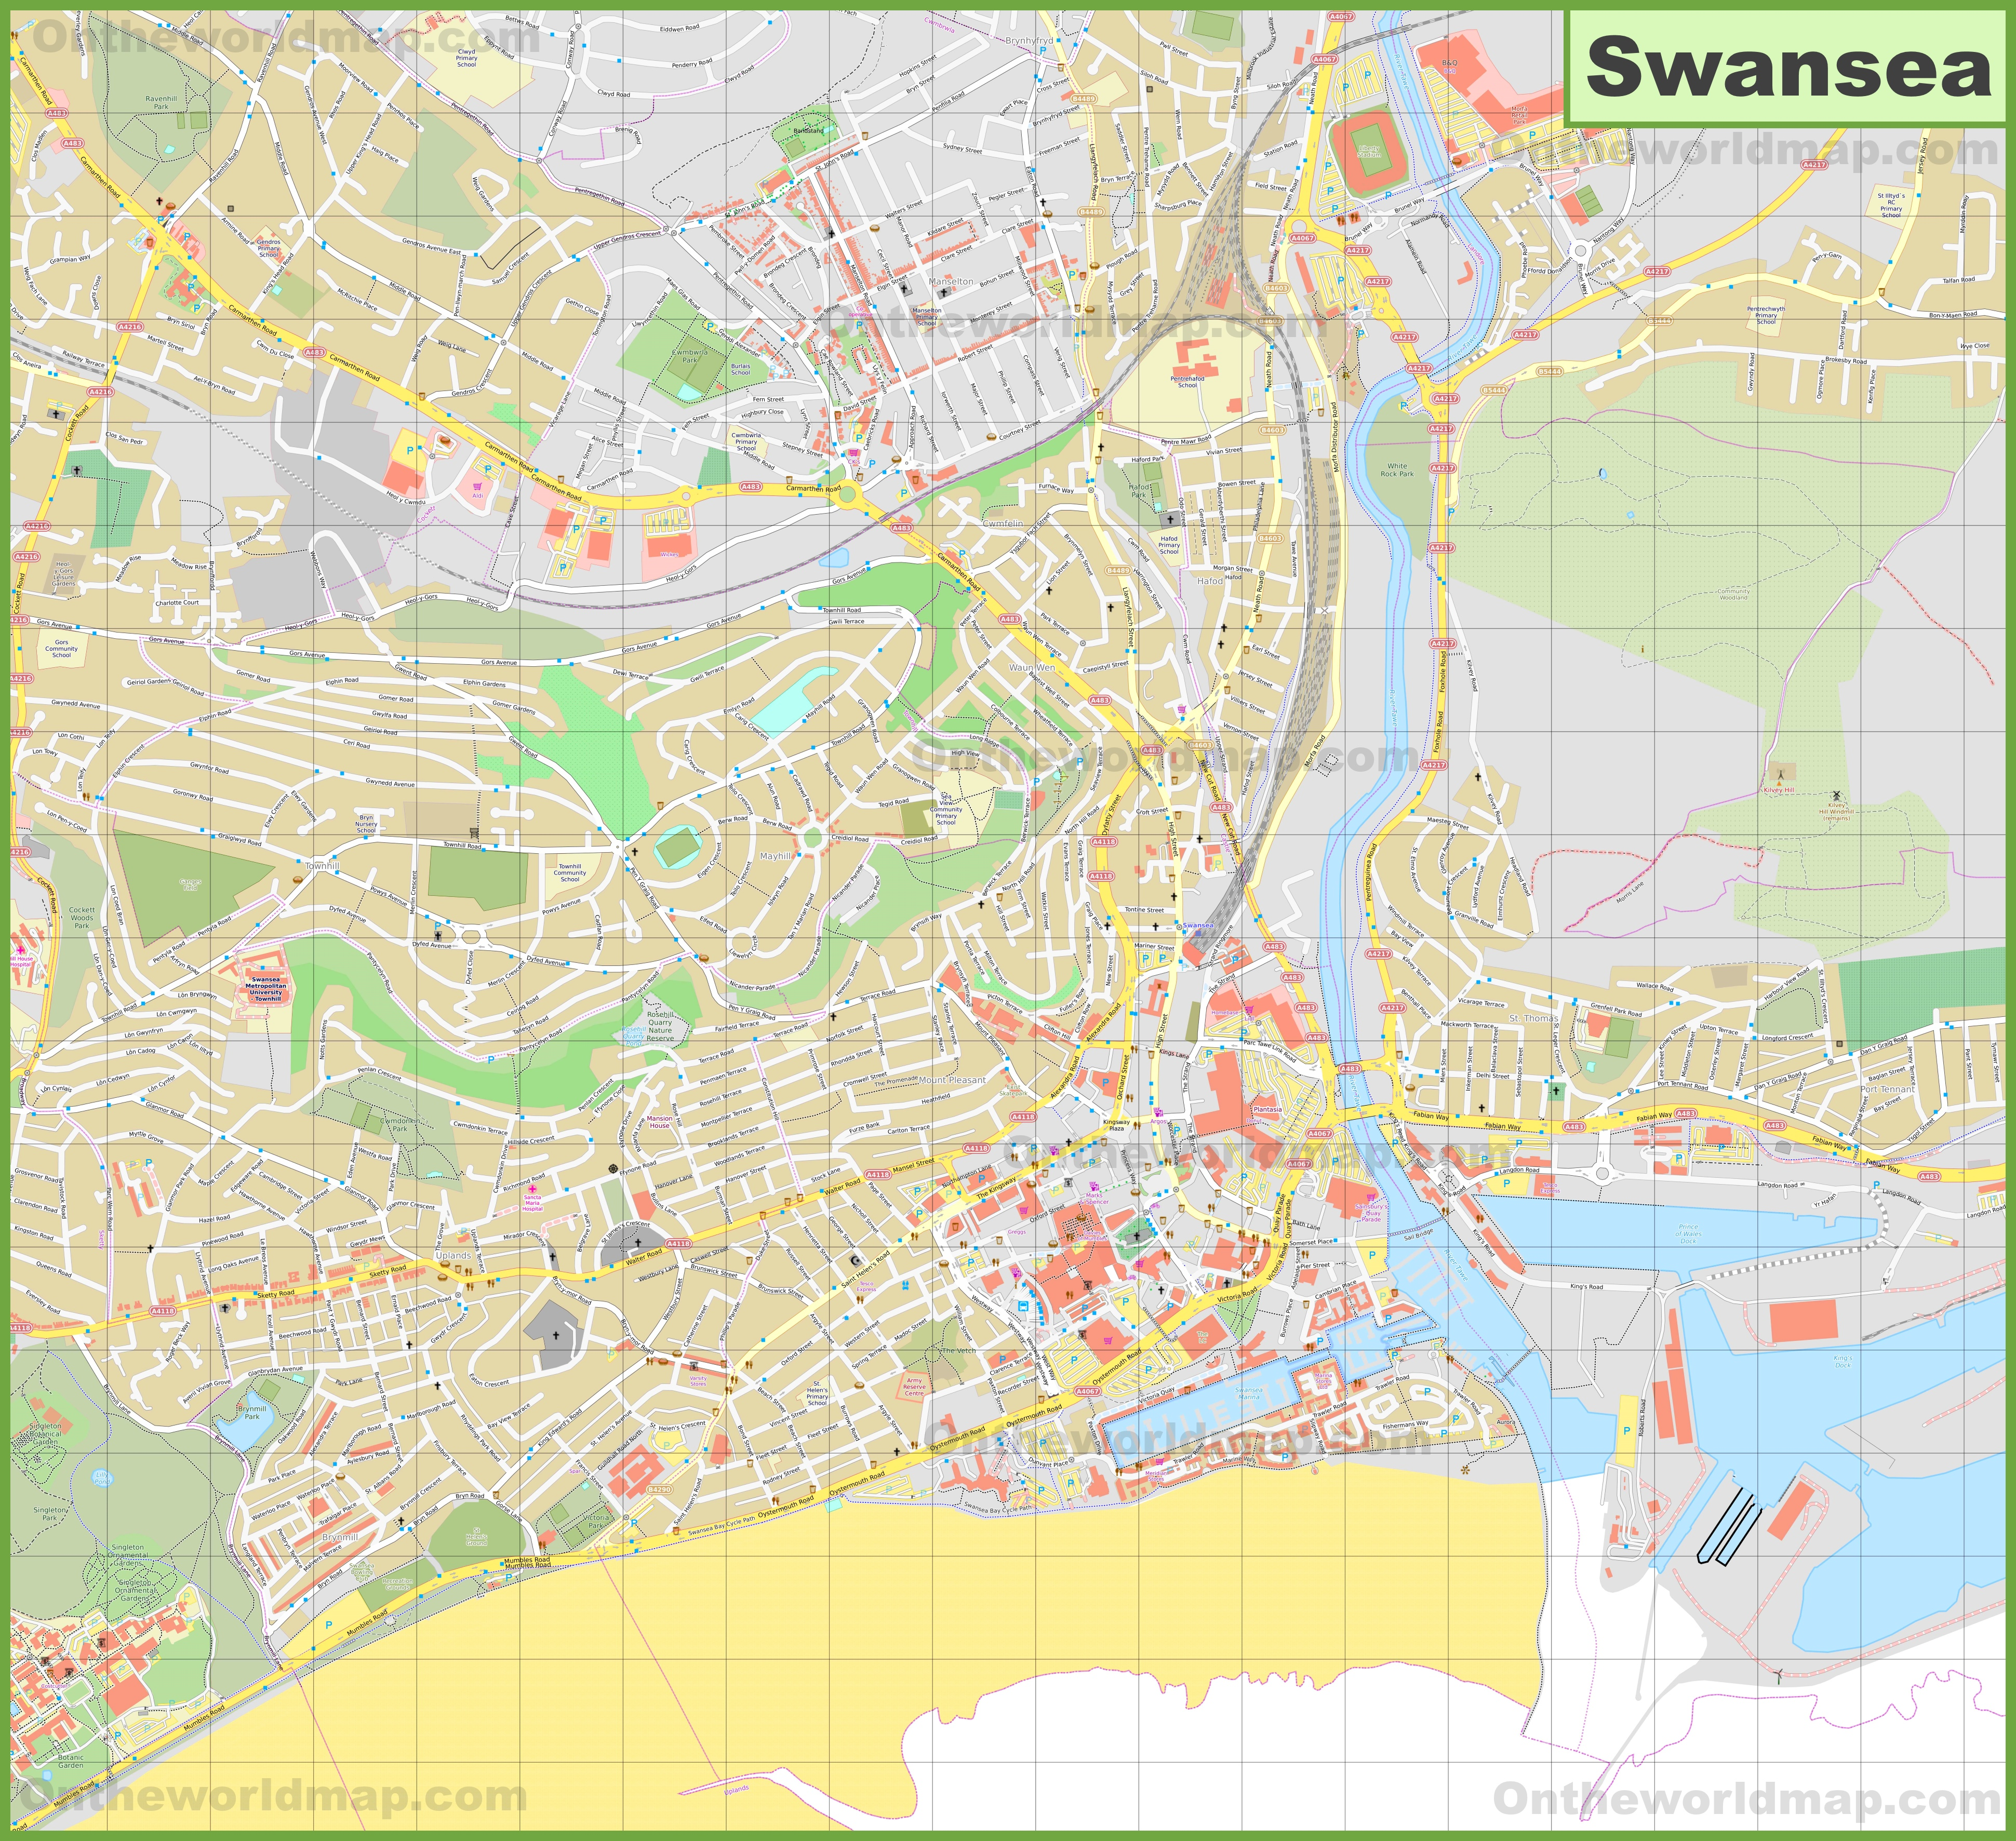 Detailed map of Swansea